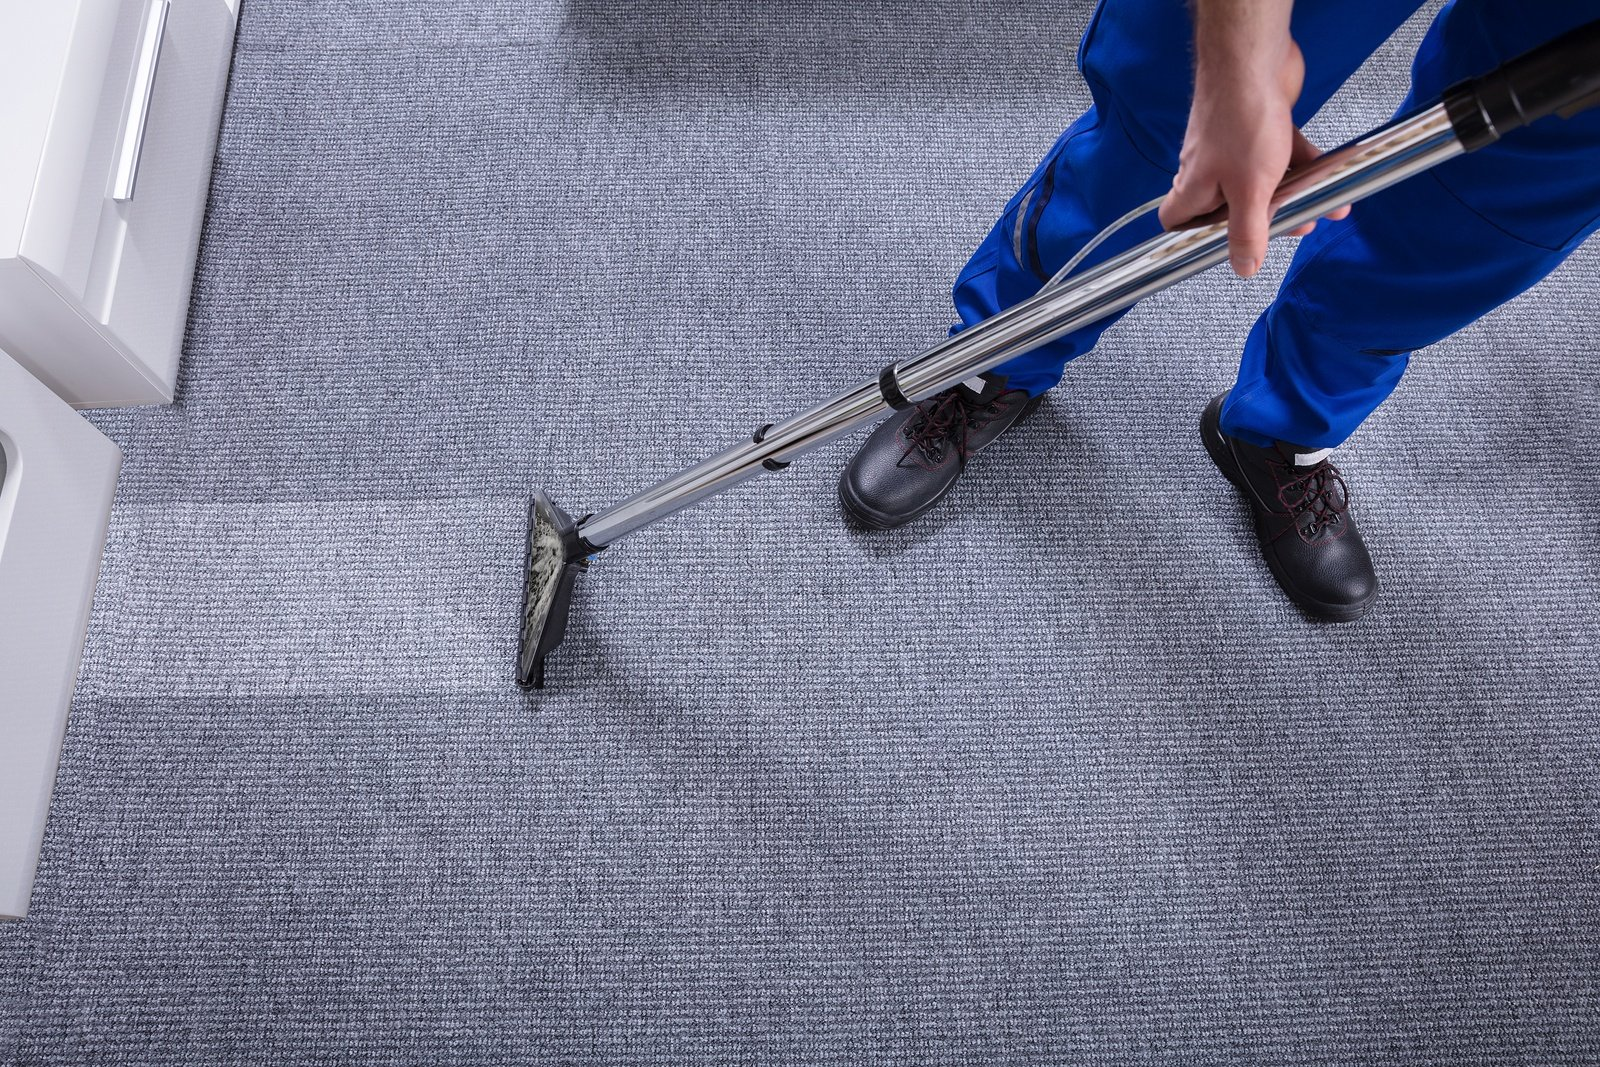 detroit commercial carpet cleaning services, carpet cleaning companies, office carpet cleaning companies